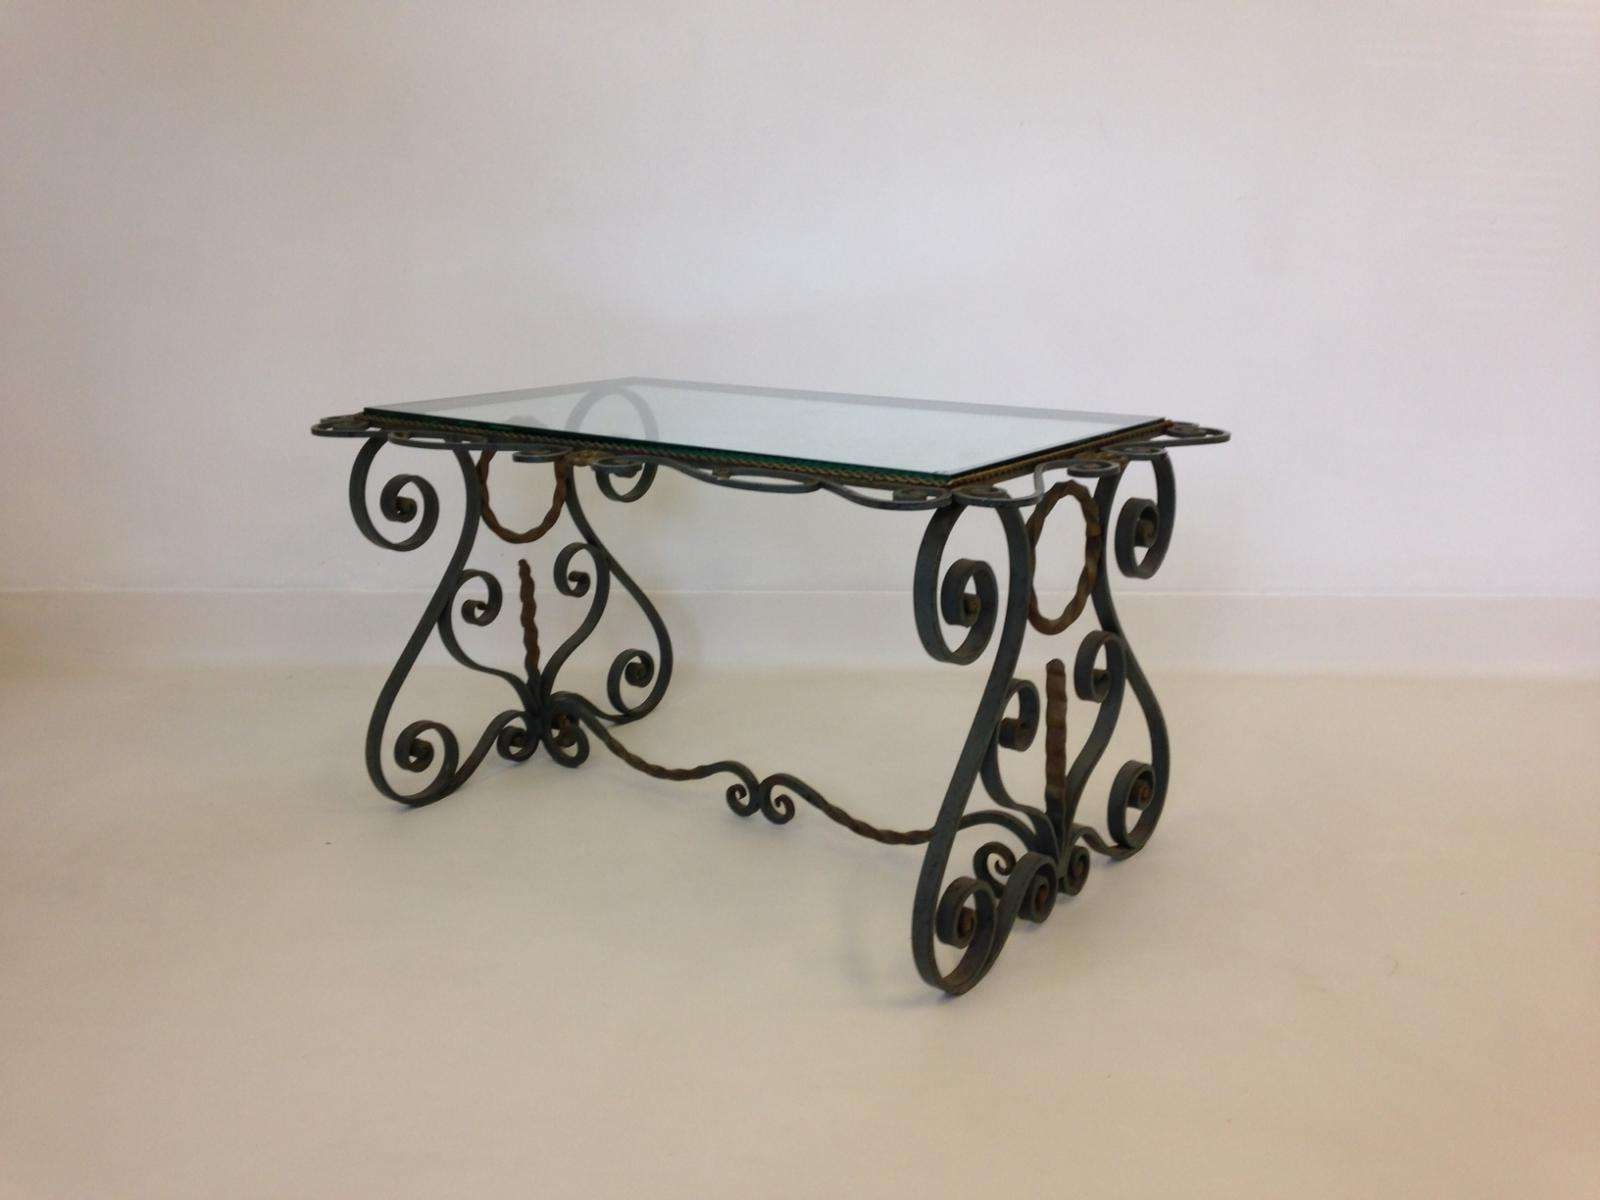 Vintage French Wrought Iron Coffee Table For Sale At Pamono Regarding Widely Used Wrought Iron Coffee Tables (Gallery 12 of 20)